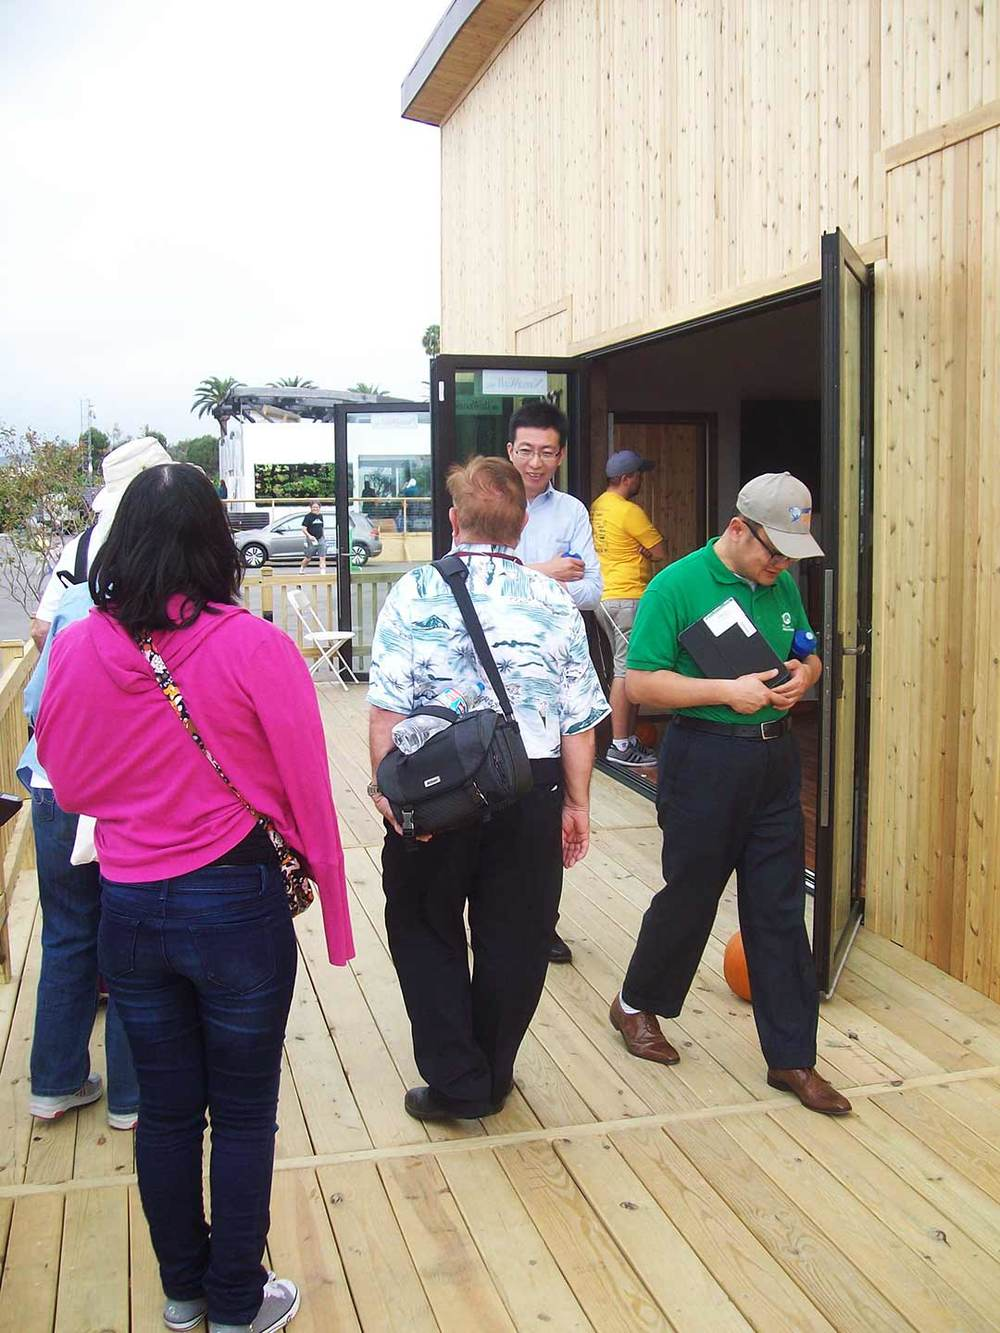 Visitors exchange discussions on our homes systems and exchanging personal stories on our large porch.